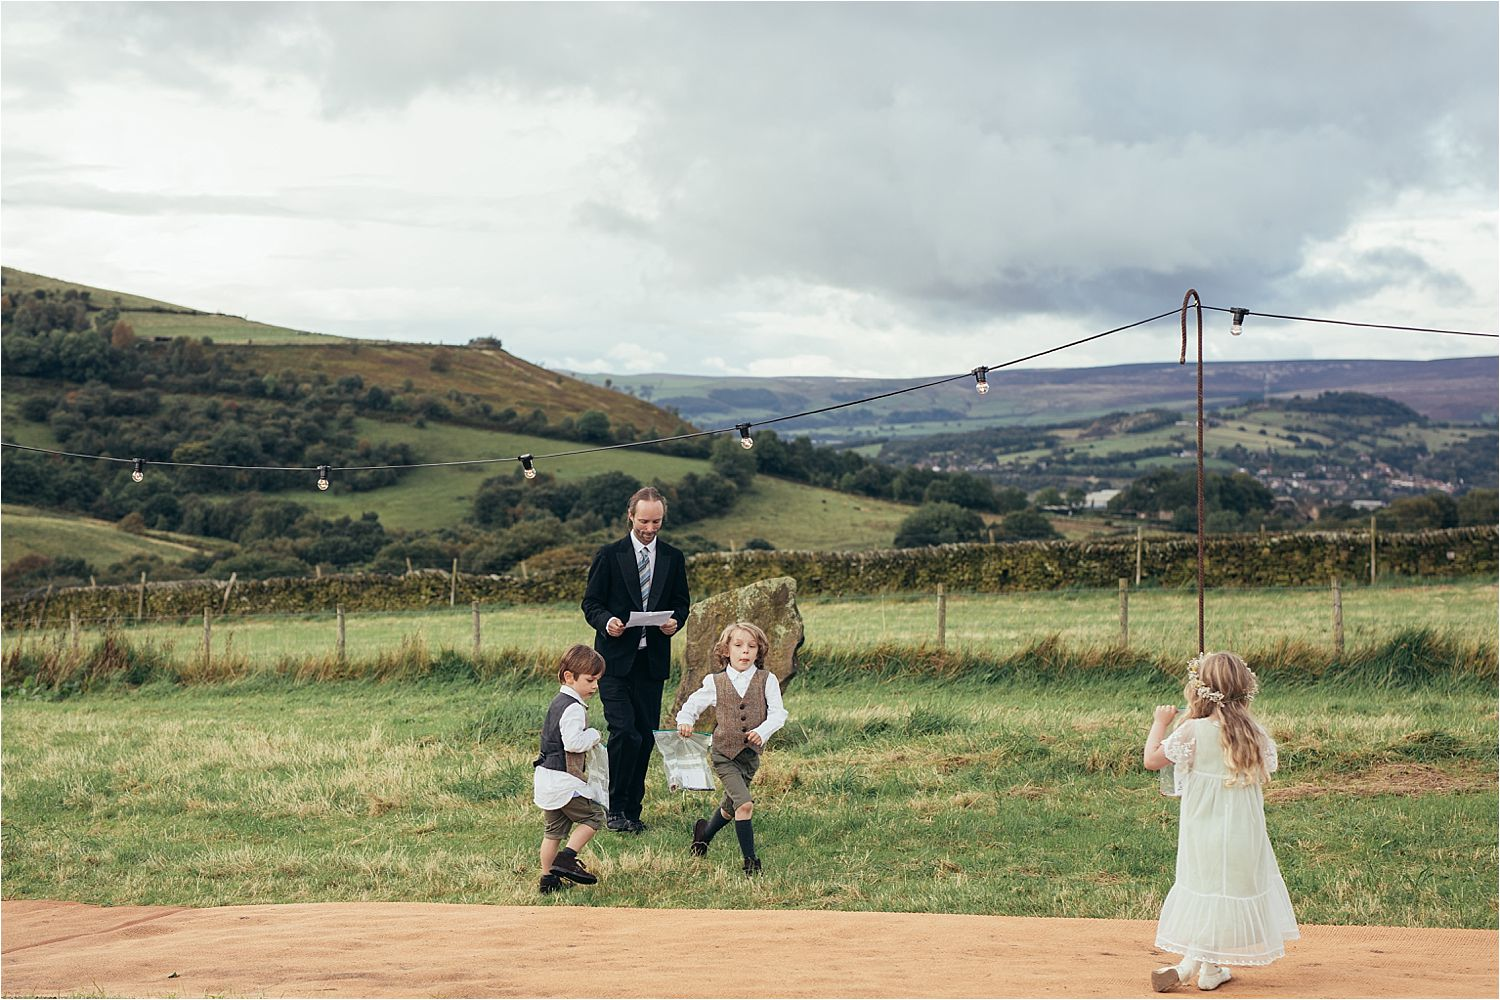 Children playing games at rural North West wedding